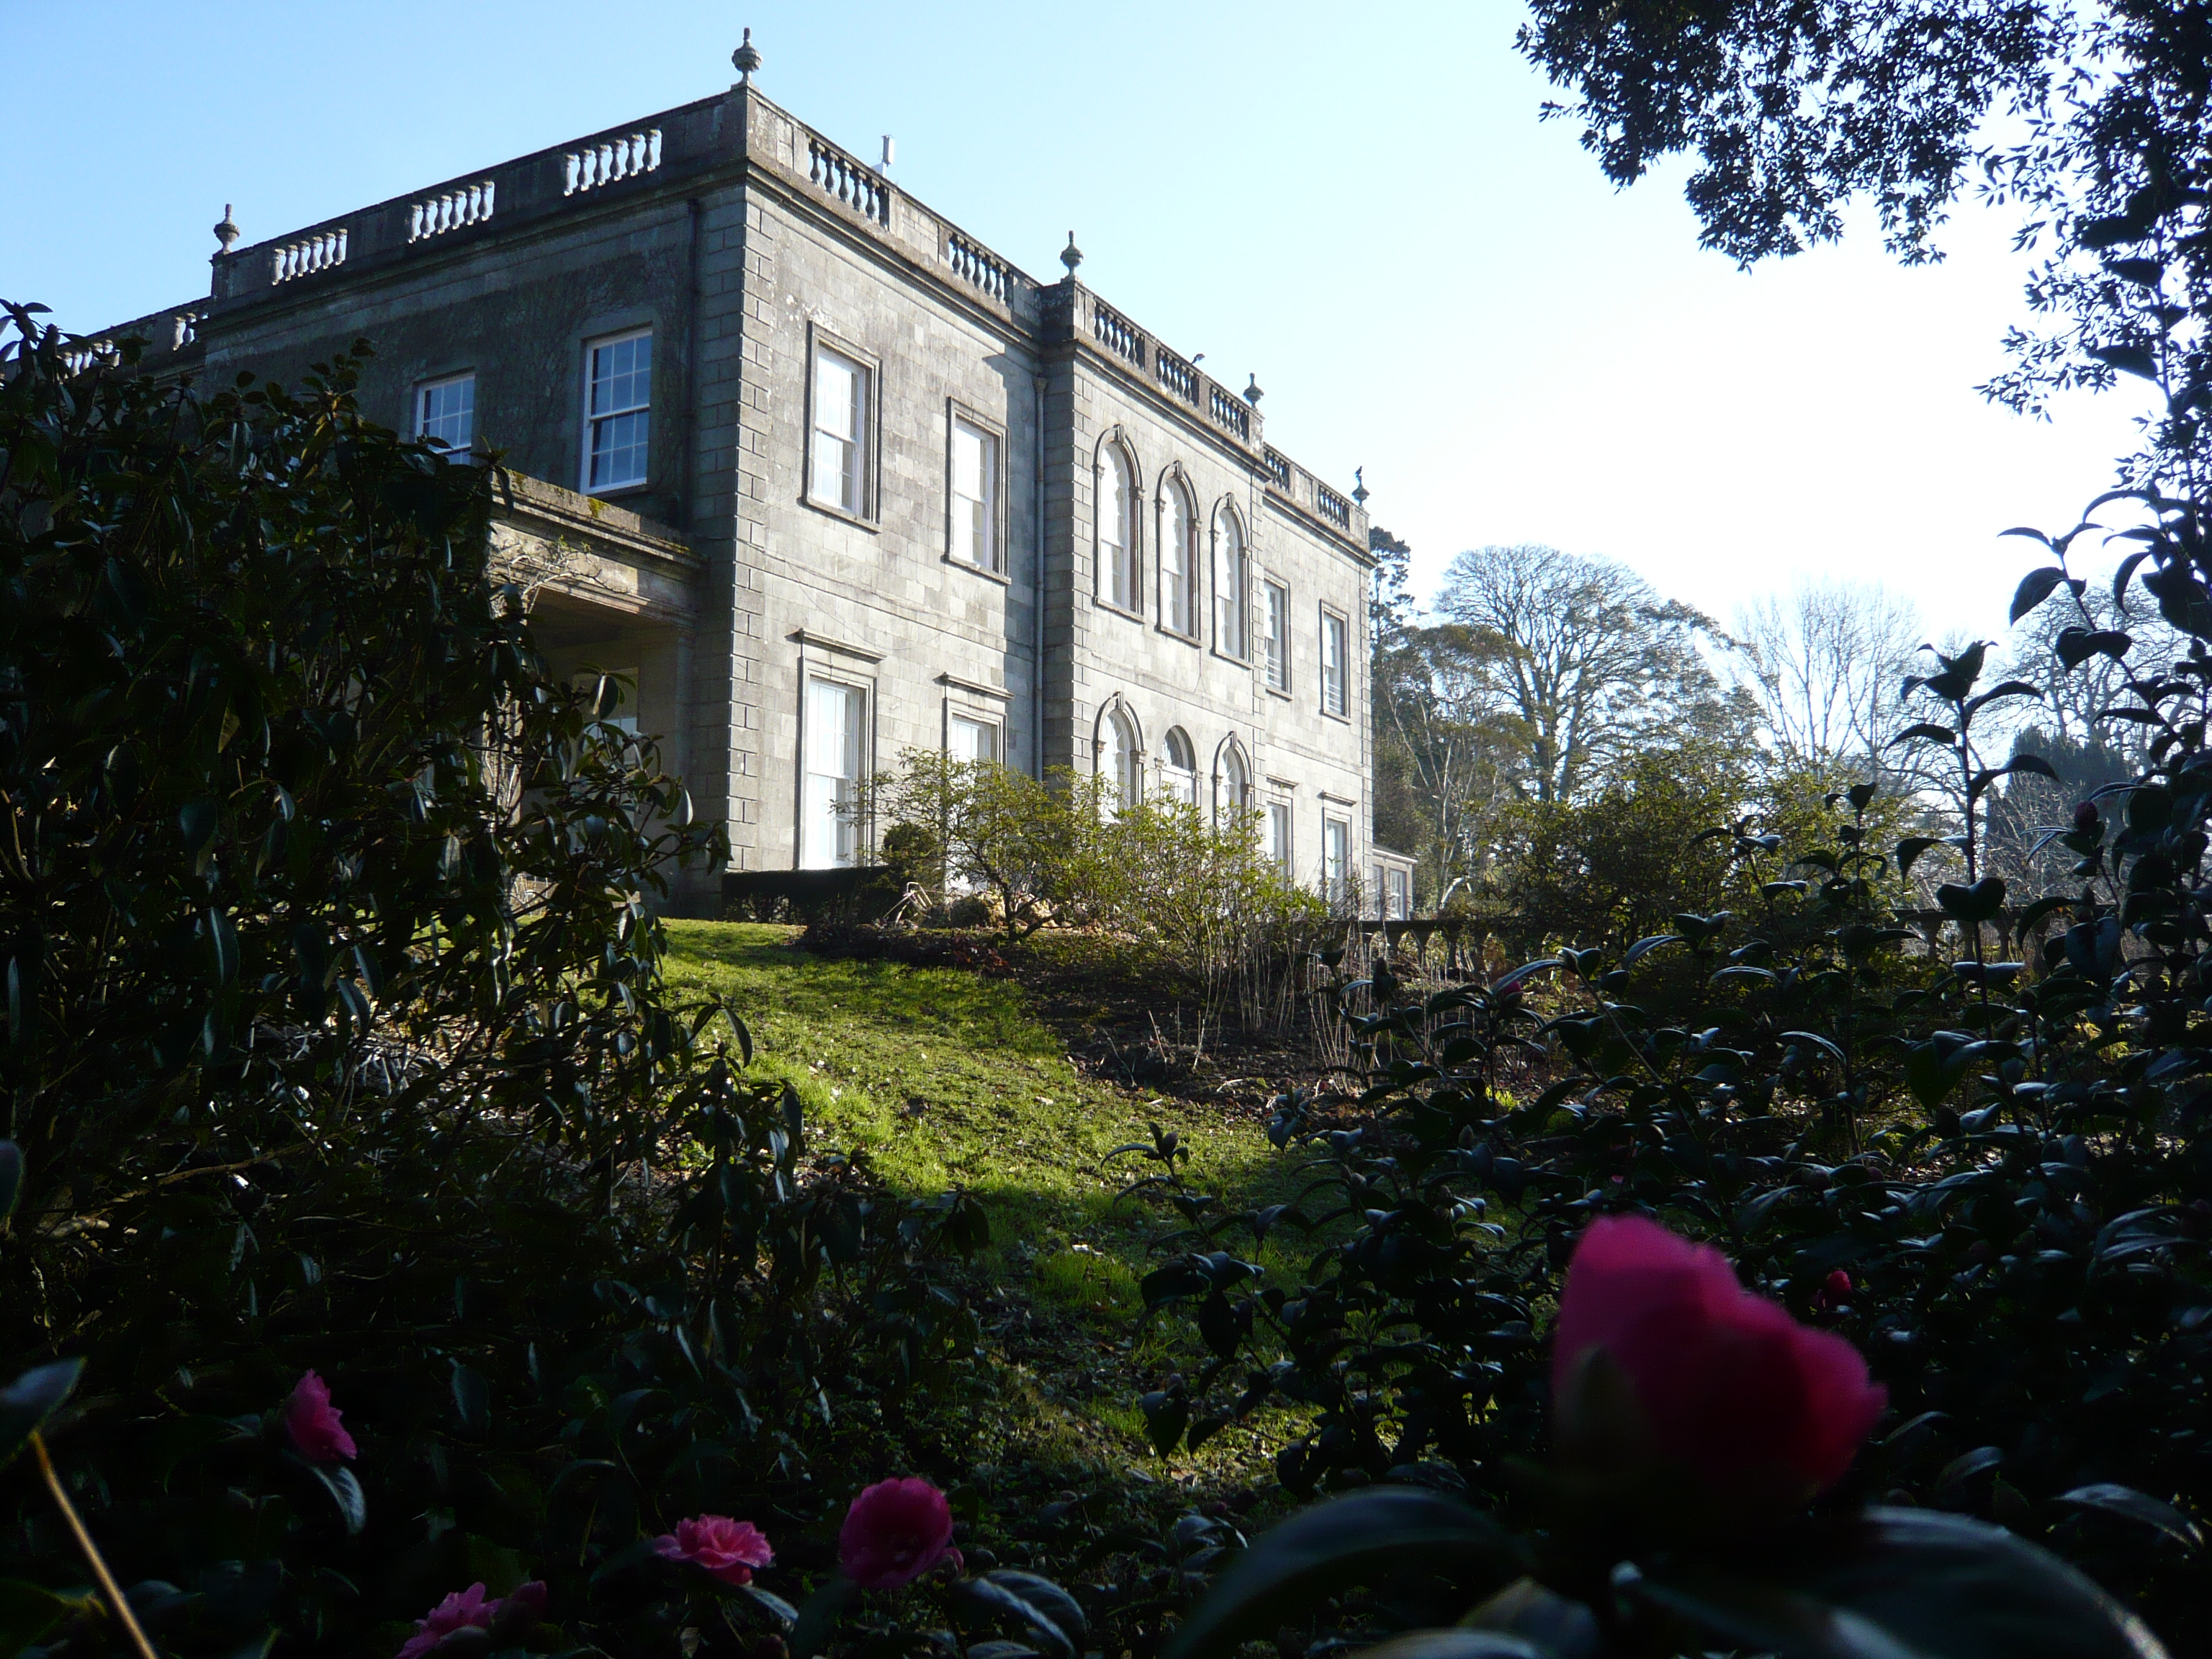 cappoquin house  u00ab the irish aesthete